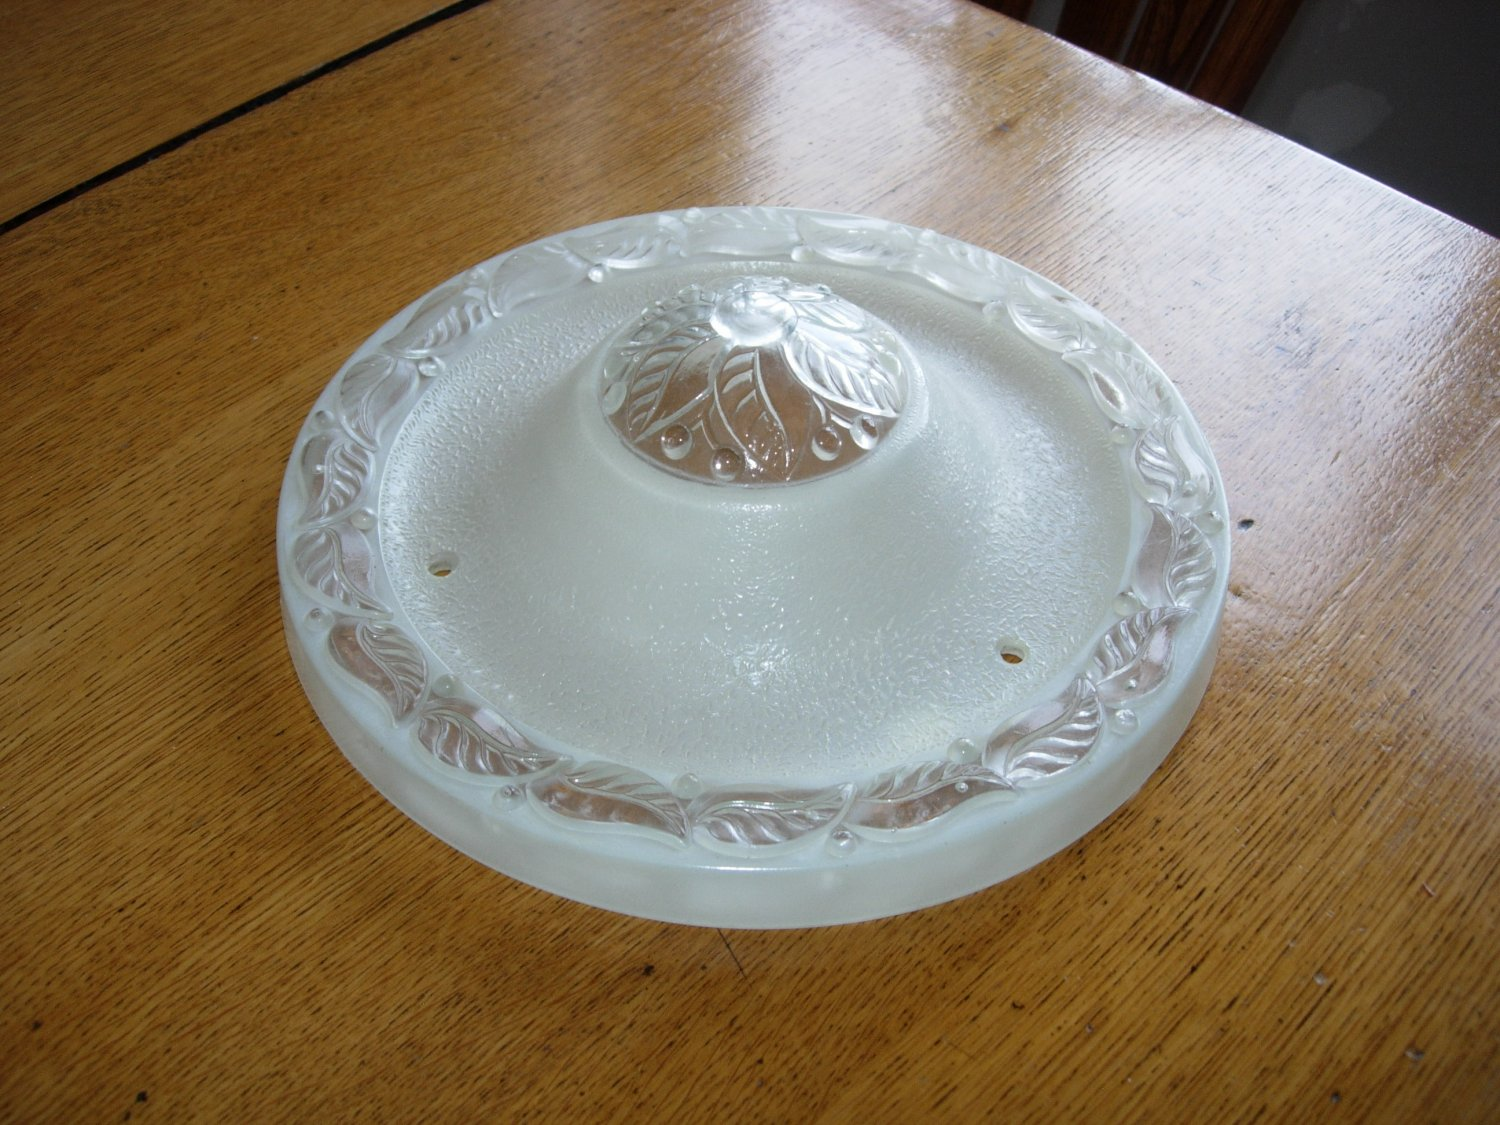 Vintage Art Deco 3 Chain Ceiling Light Shade with Embossed Flower Pattern